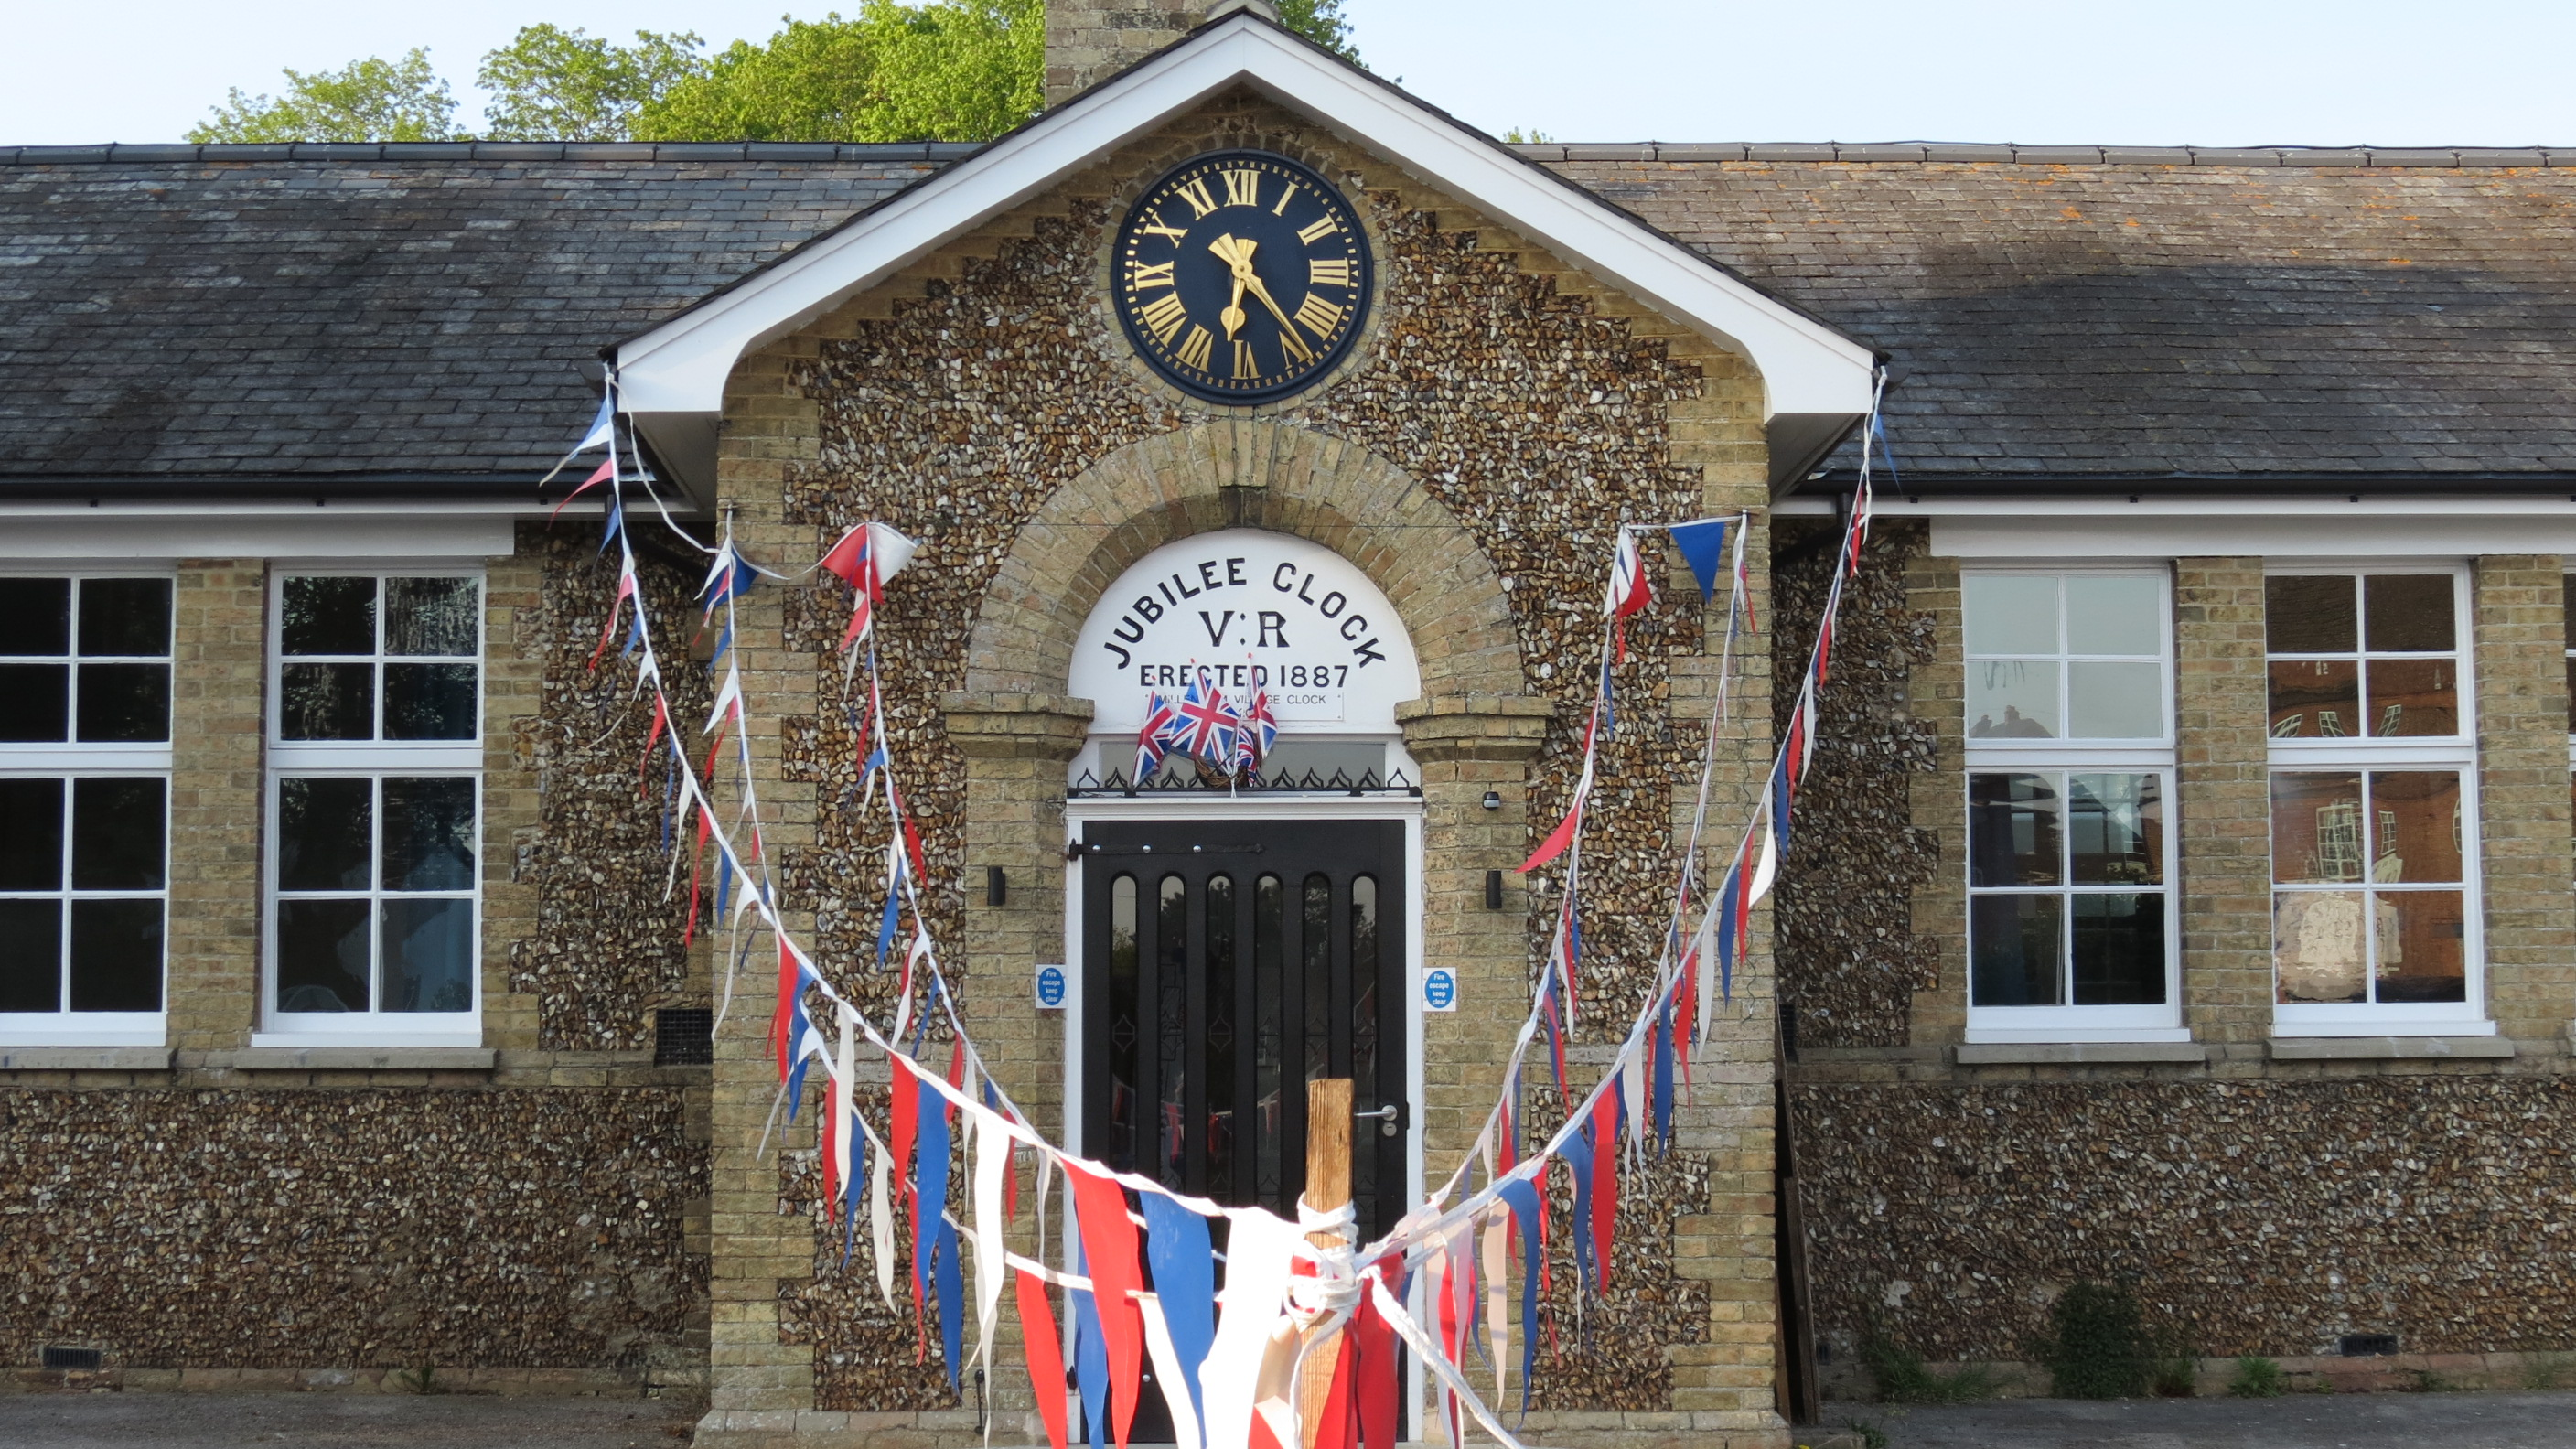 Westleton Village Hall from the front showing red, white and blue bunting.